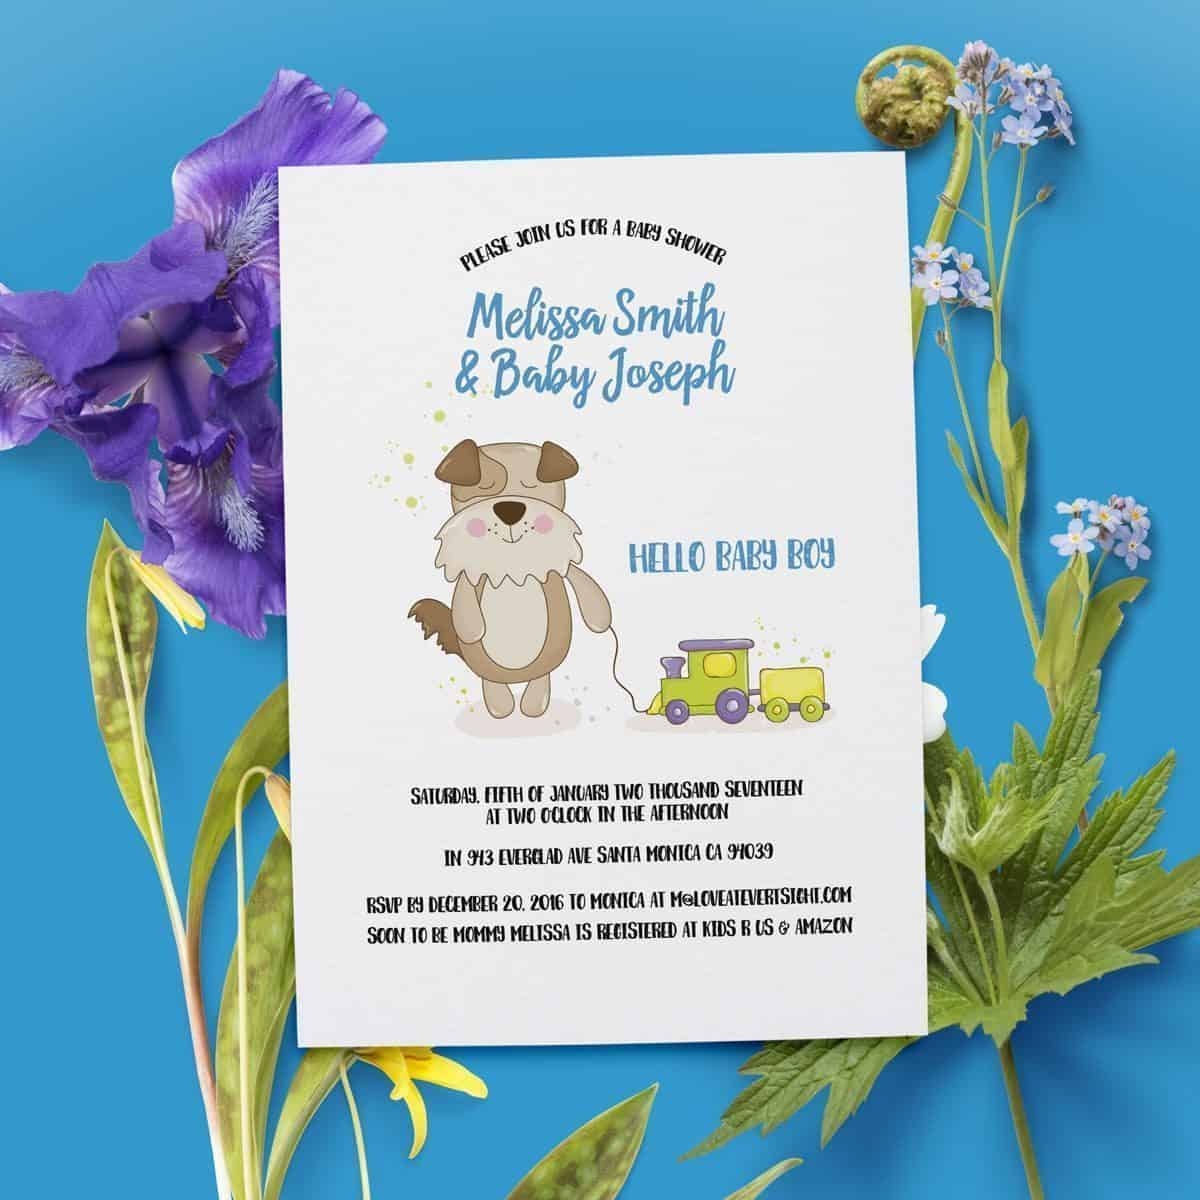 Invitation cards product categories loveateverysight hello baby boy baby shower party invitation cards personalized and customized baby announcement cards stopboris Gallery